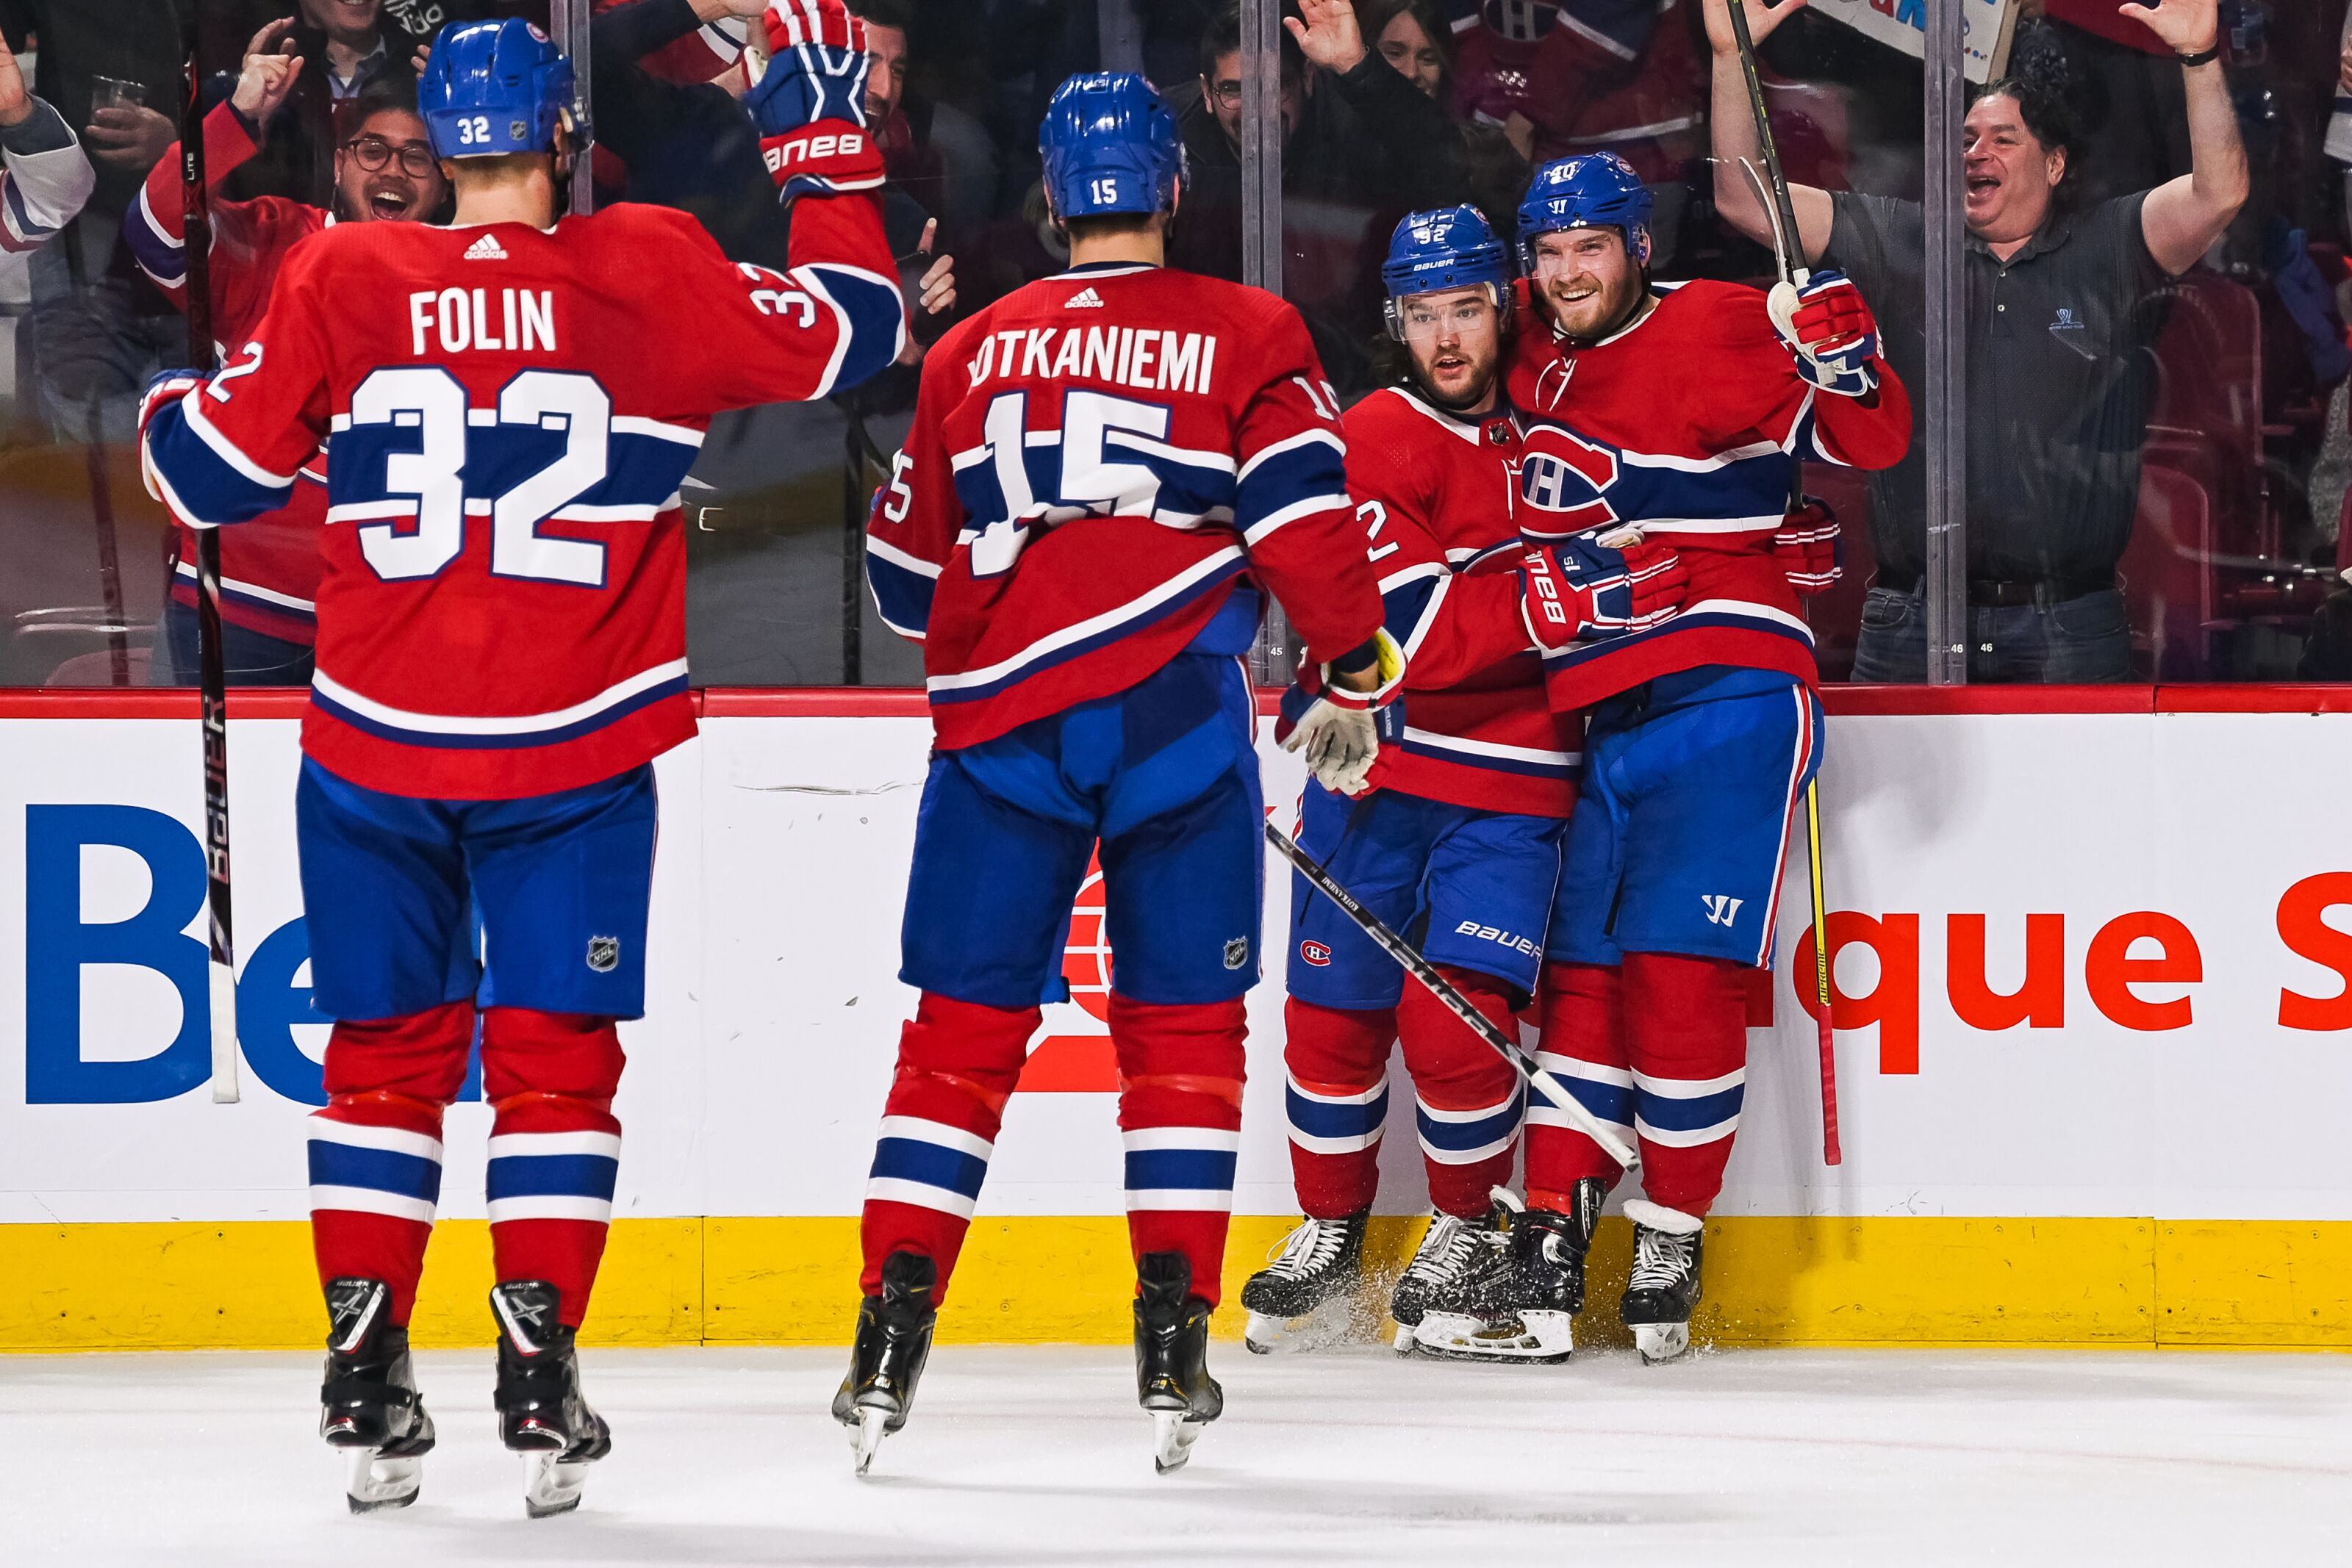 The Montreal Canadiens and Jonathan Drouin returned to form